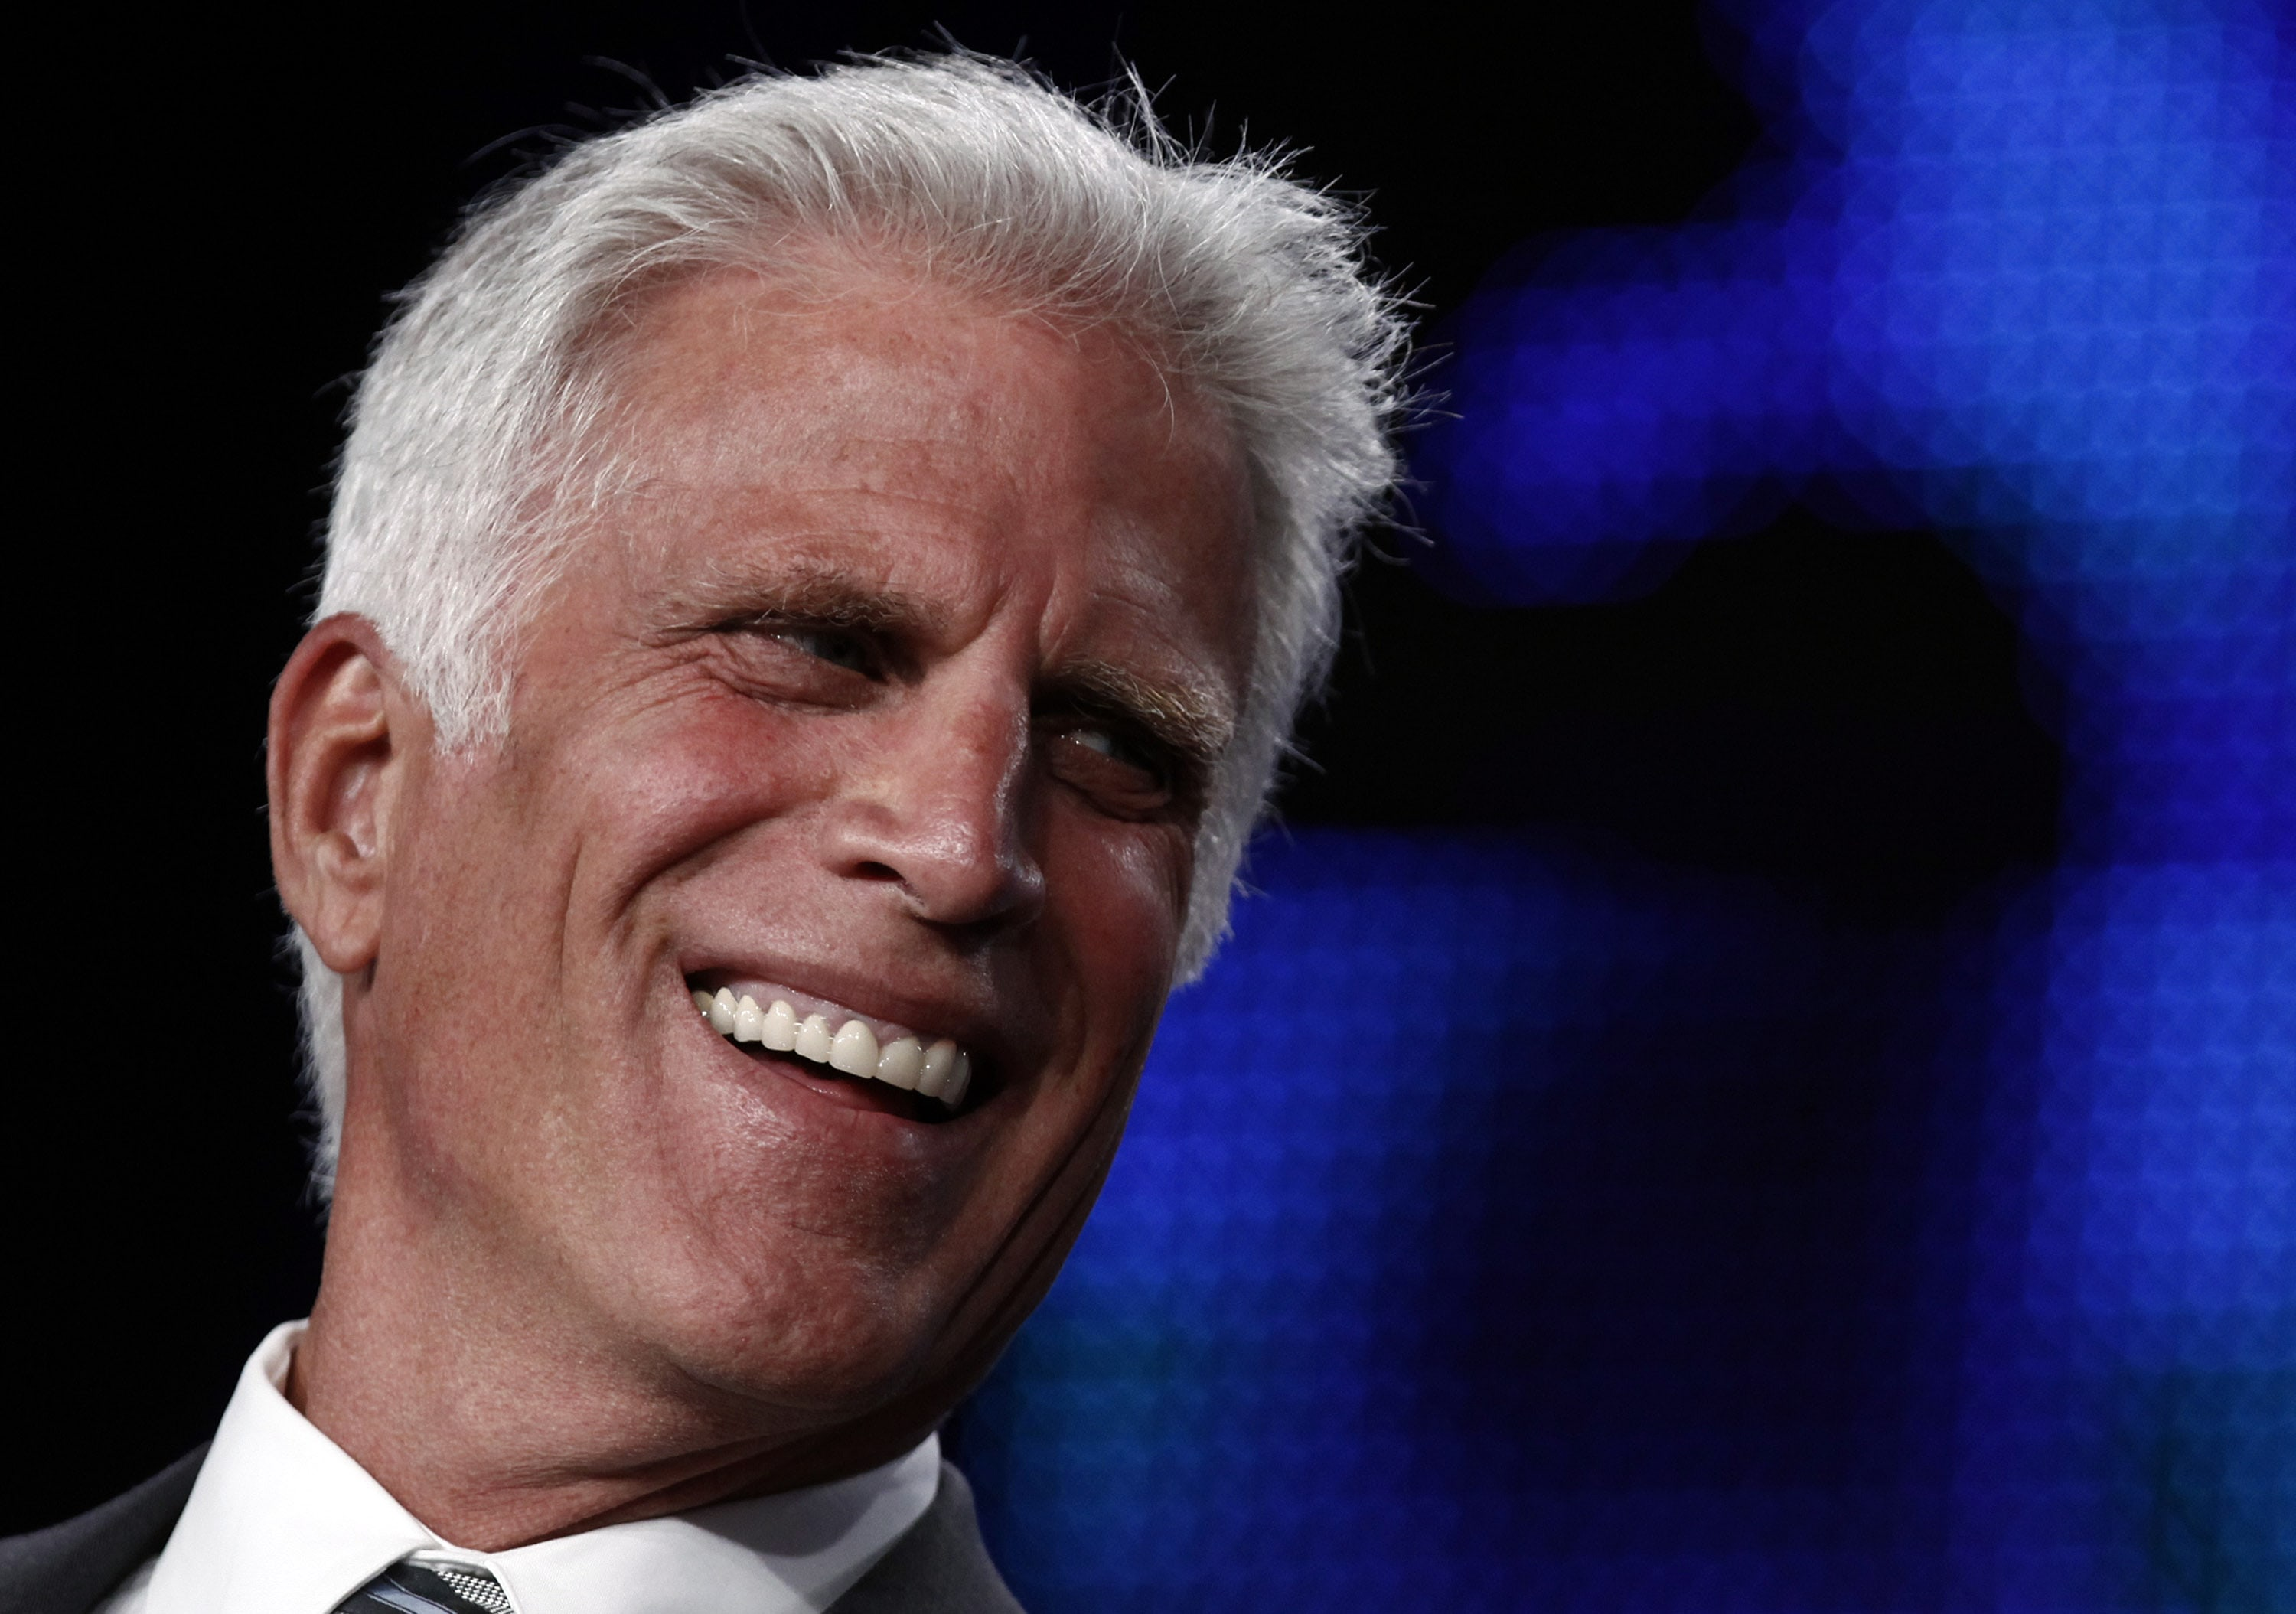 Ted Danson Full hd wallpapers